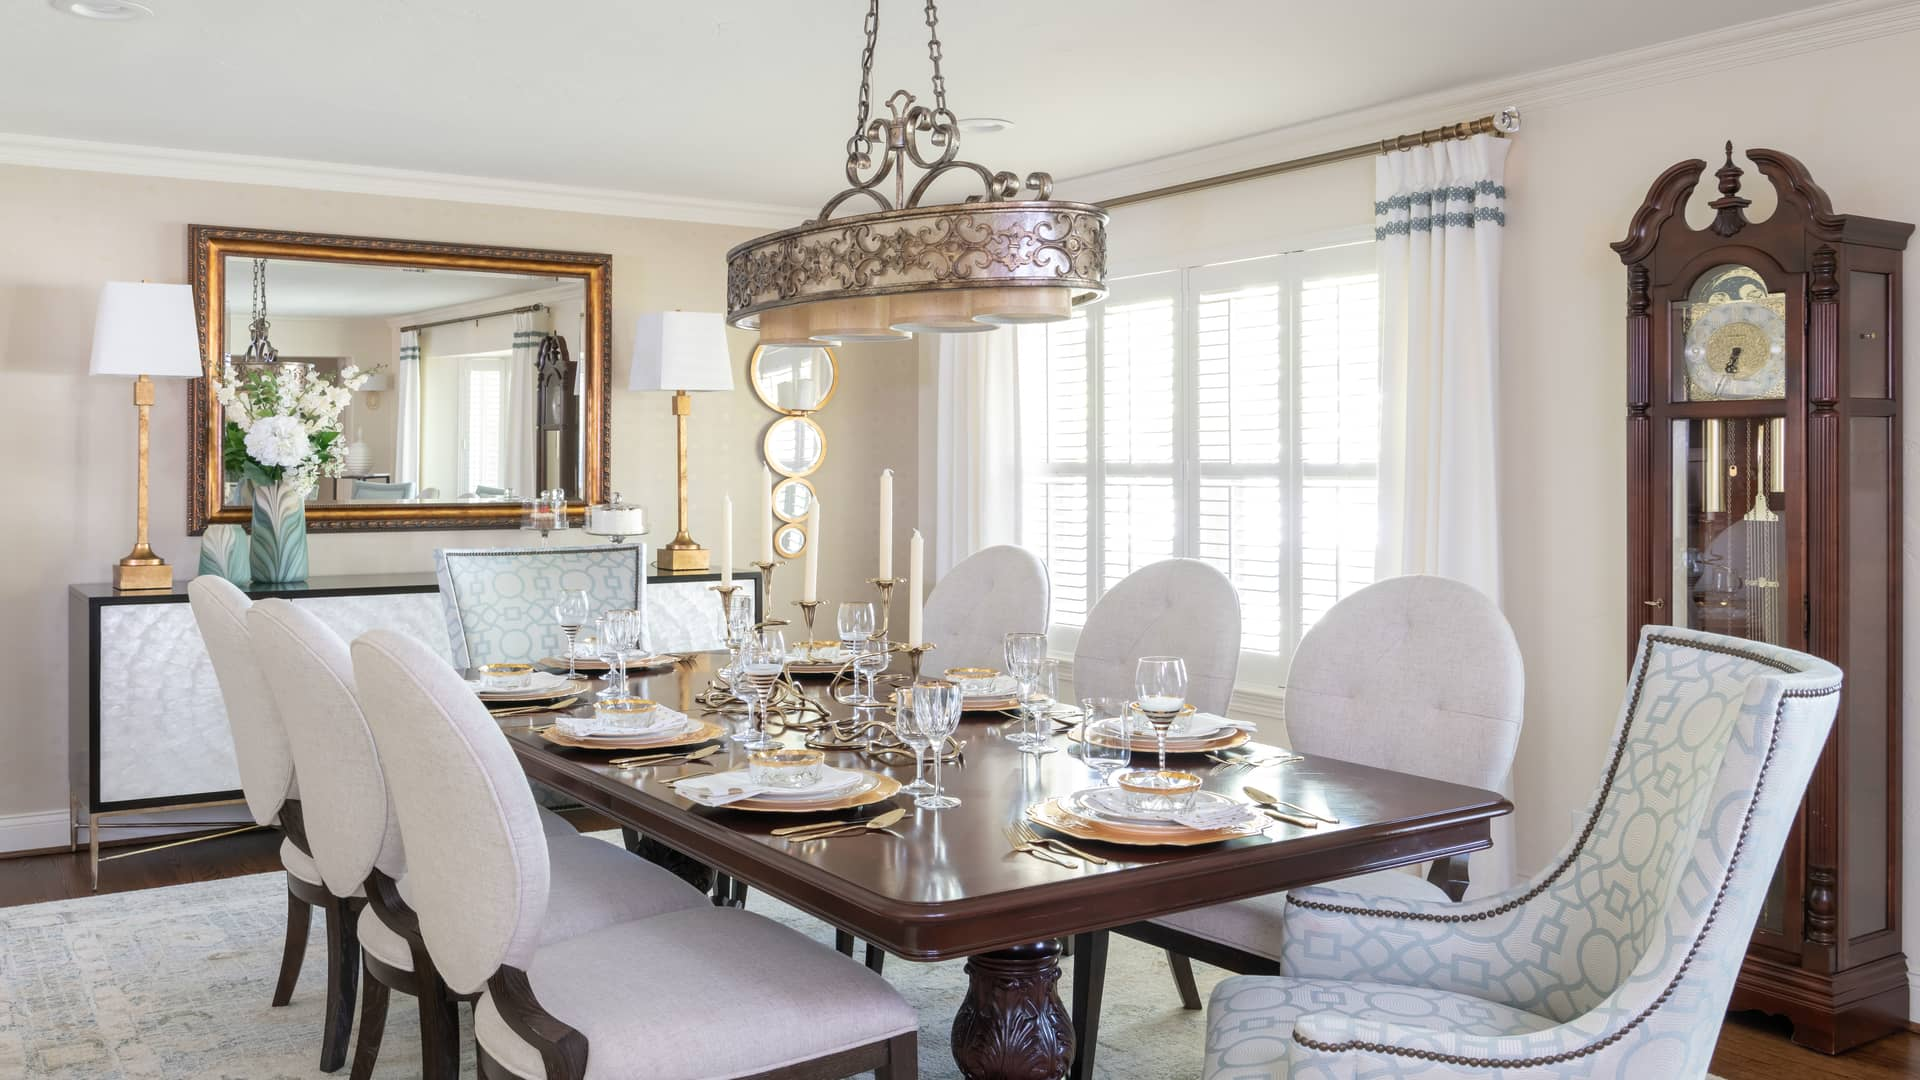 Transition To Retirement 4 | Award-Winning Interior Designers, Interior Decorators, Kitchen Designers, Bath Designers, Home Renovations, Window Treatments, & Custom Furniture D'KOR HOME by Dee Frazier Interiors | Interior Designer Dallas TX